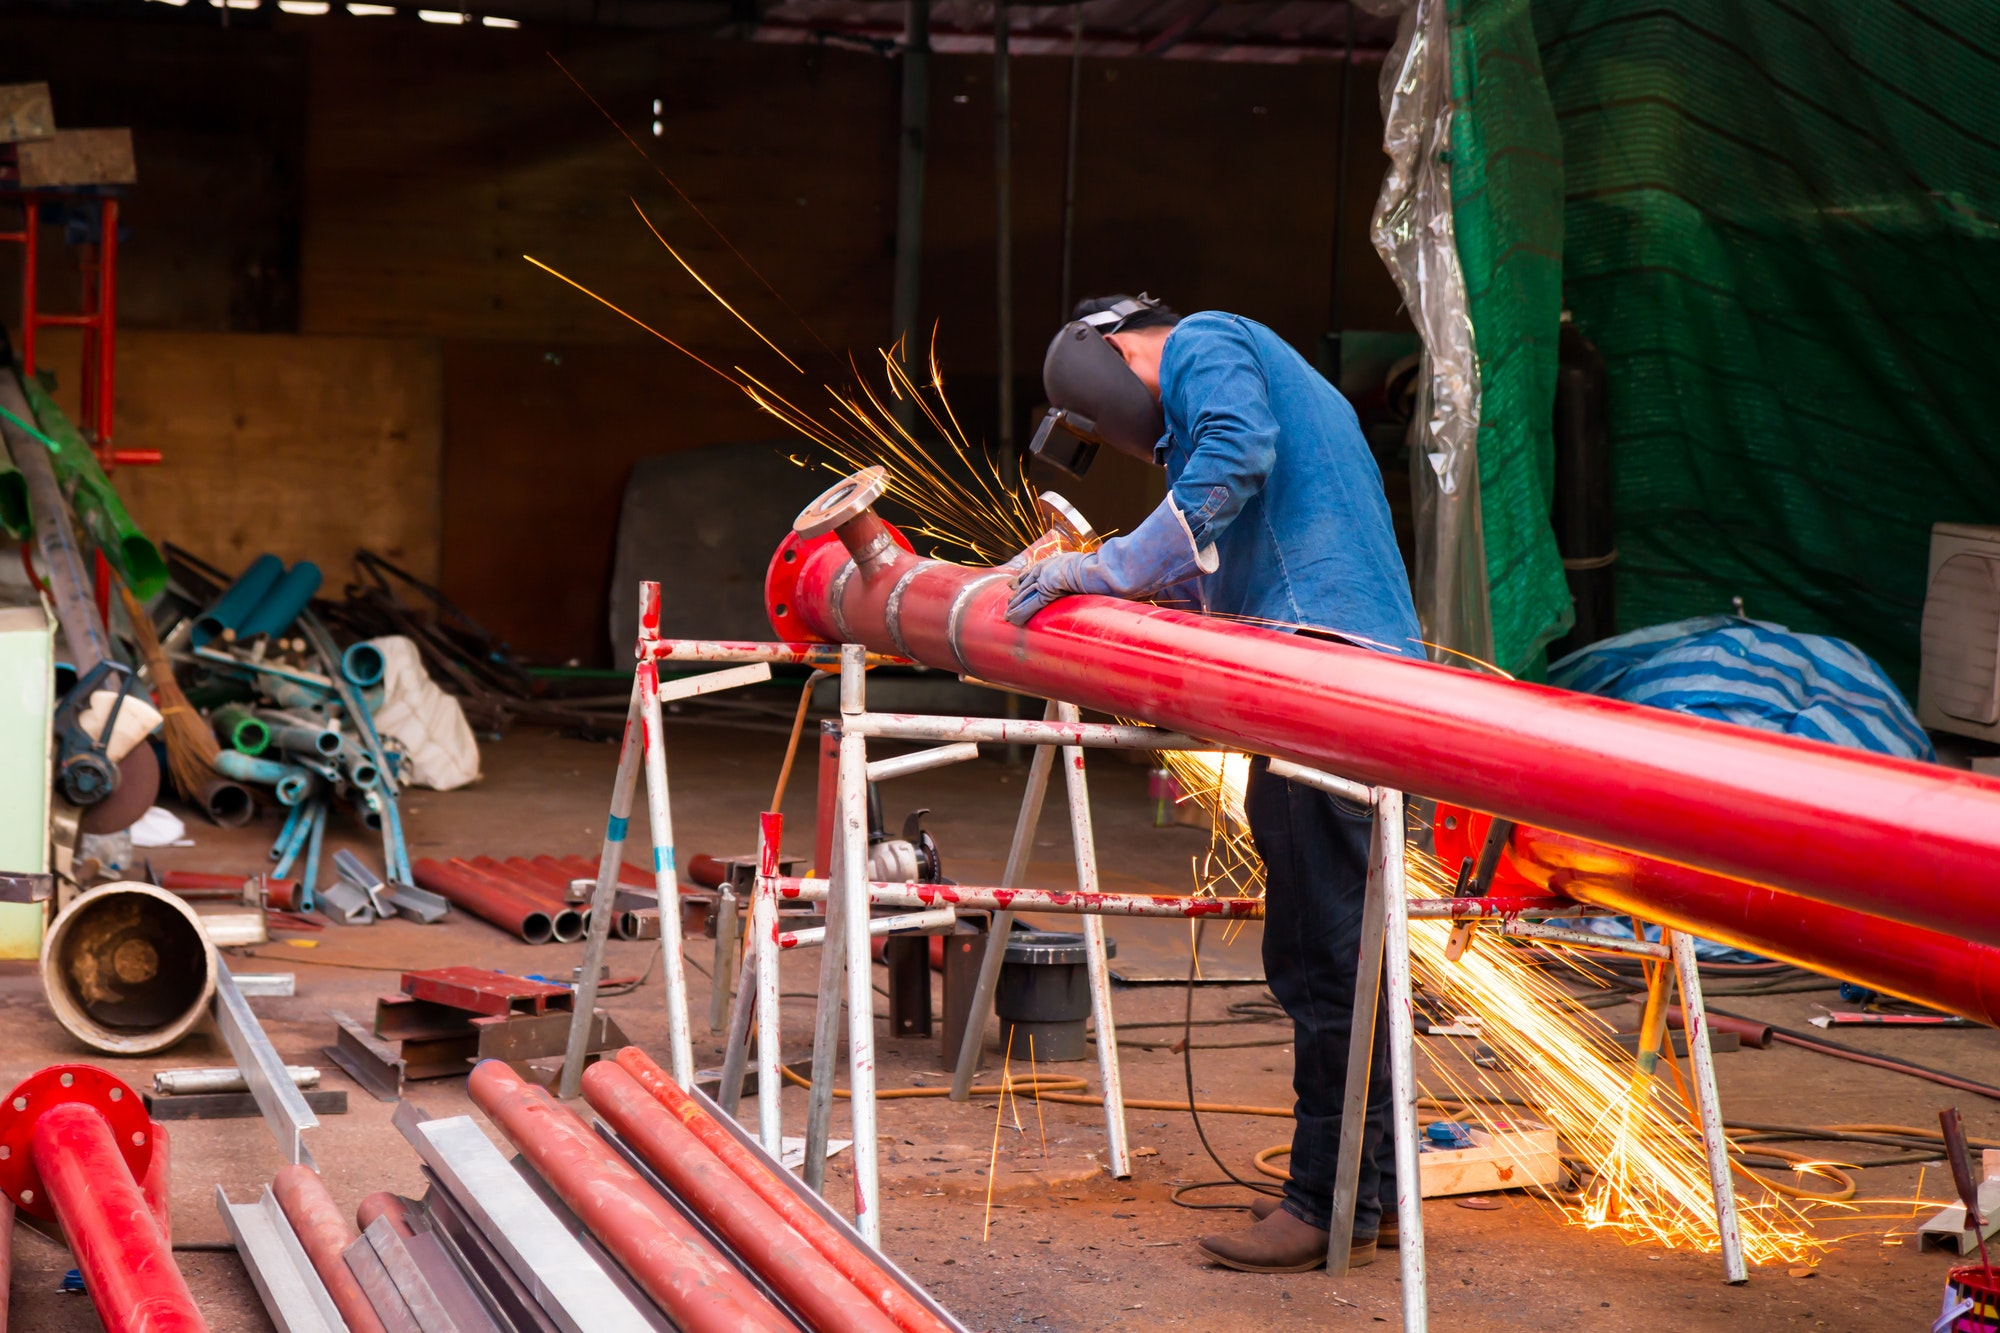 Worker cutting steel red pipe with acetylene welding cutting torch with industrial construction site